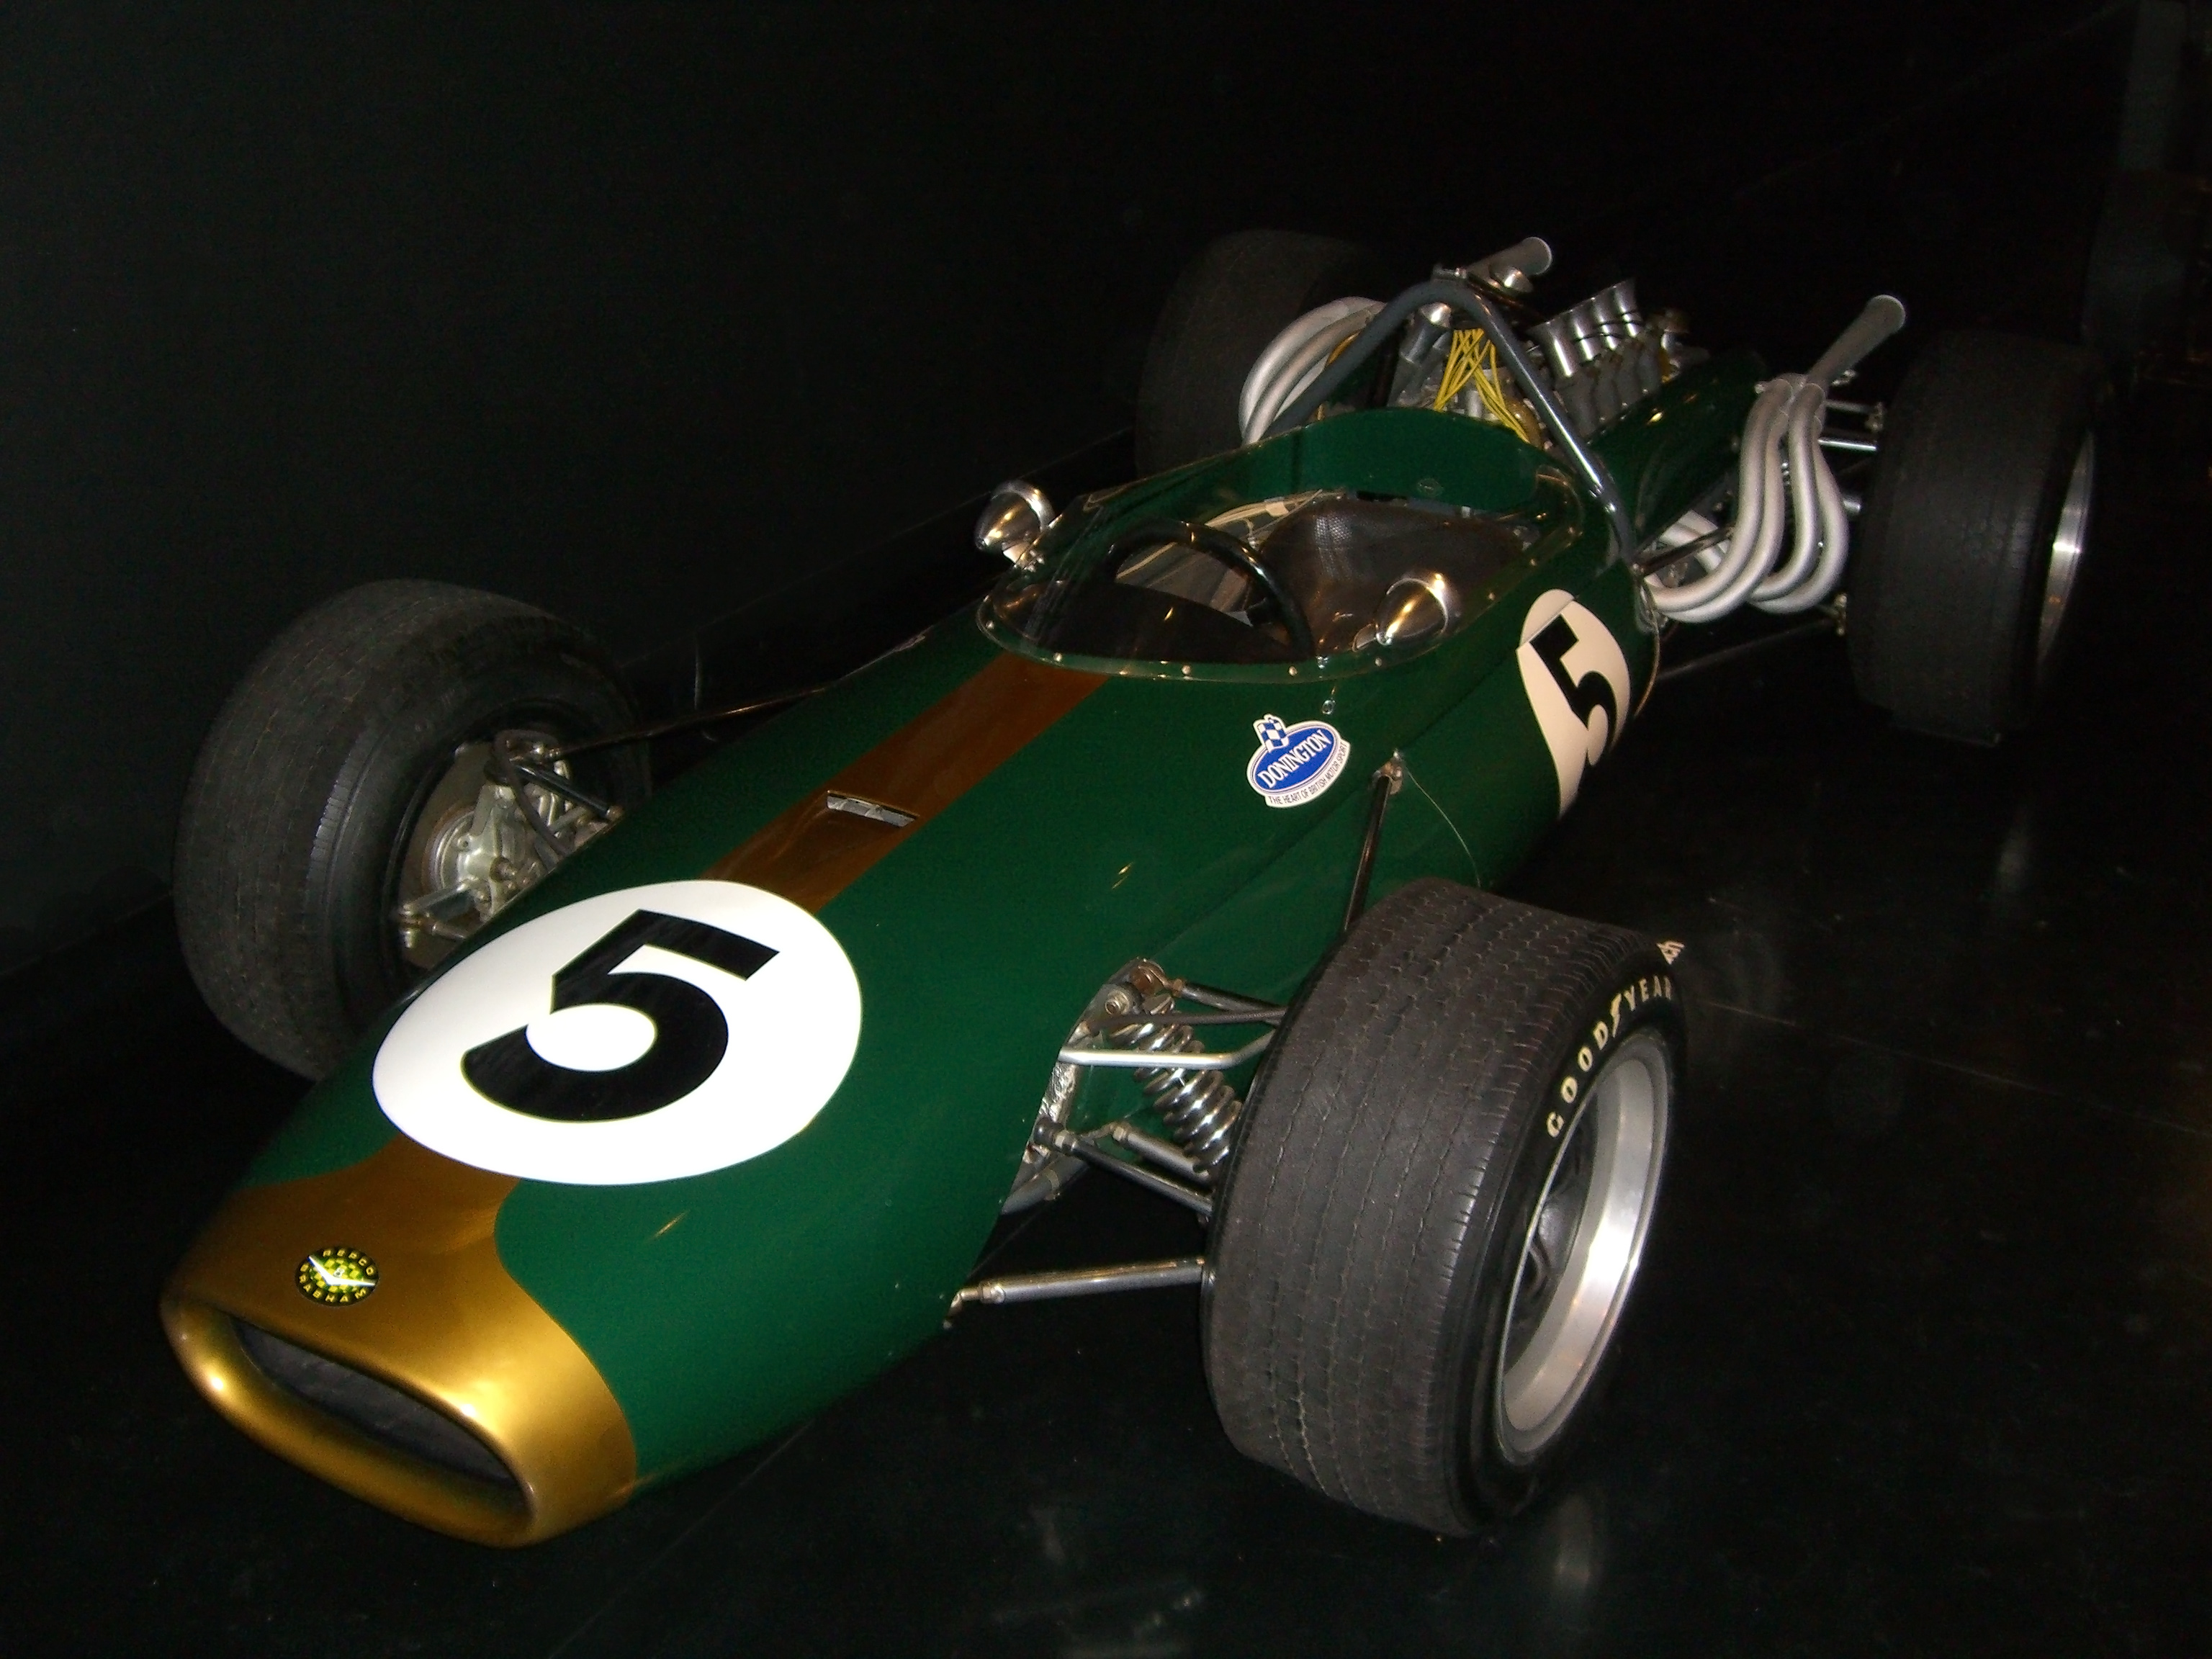 Brabham bt20 photo - 3